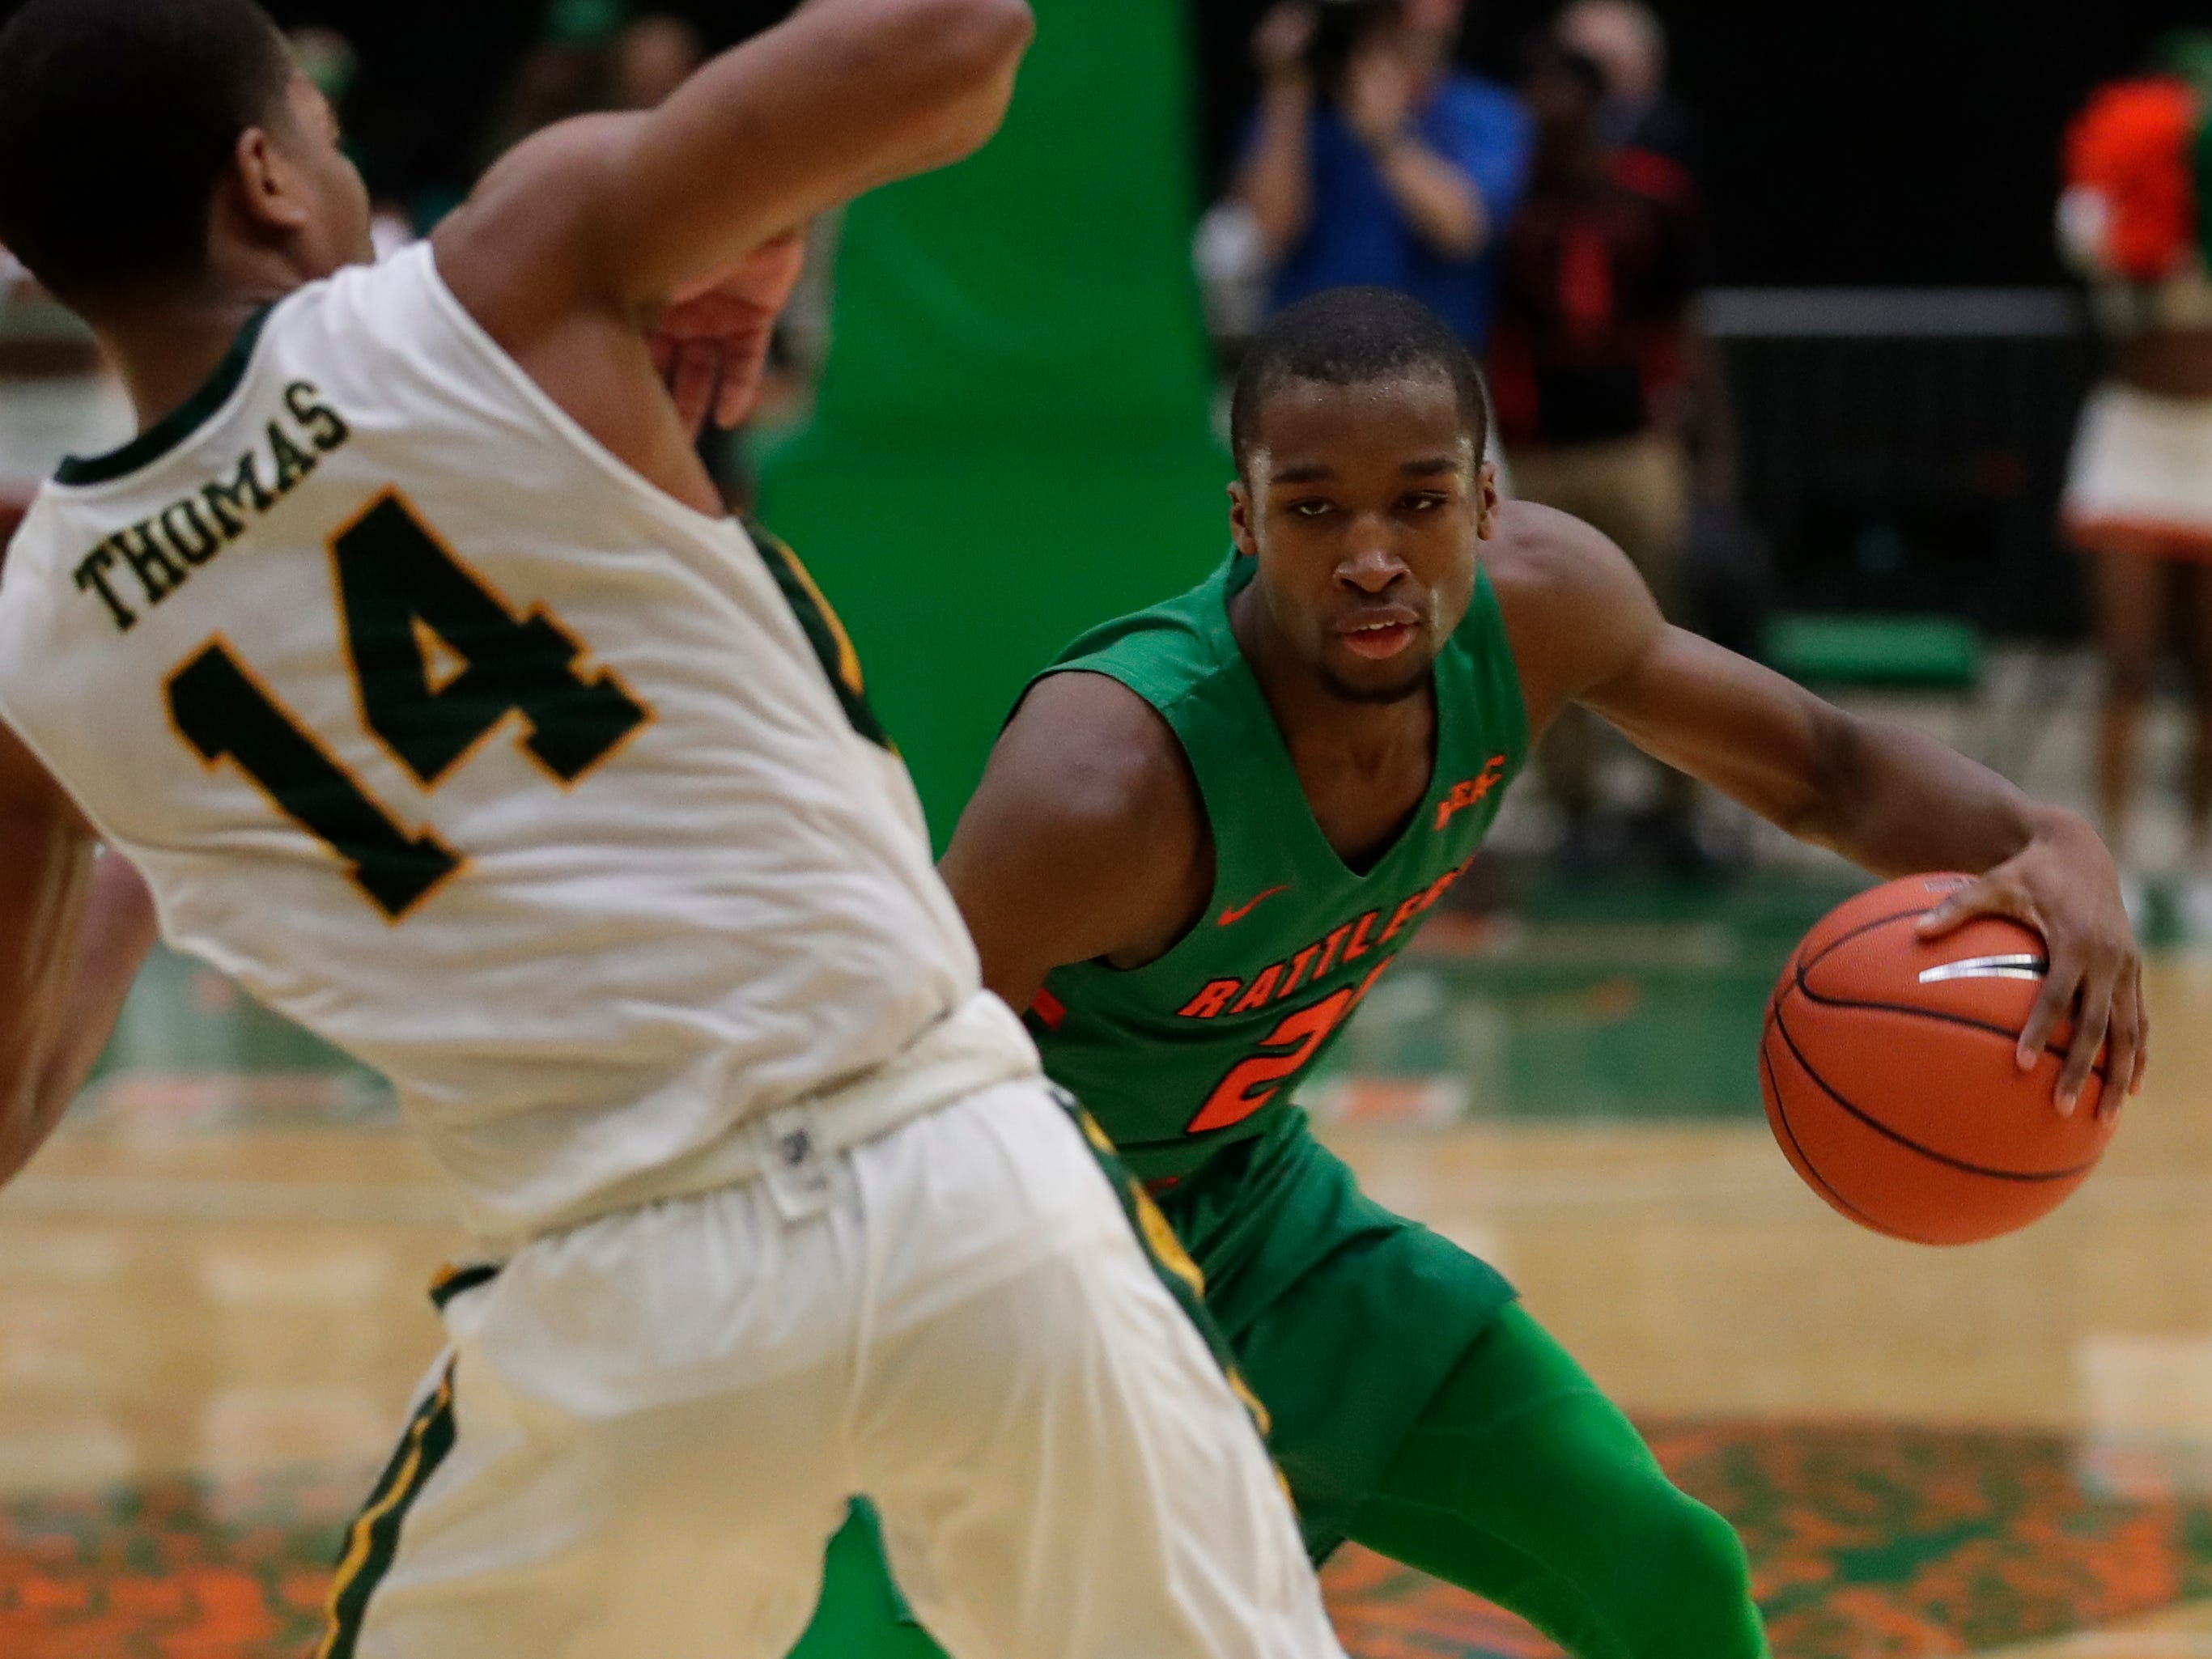 Florida A&M guard Justin Ravenel (21) dribbles around Nic Thomas of Norfolk State at the Alfred Lawson Jr. Multipurpose Center Monday, Feb. 11, 2019.